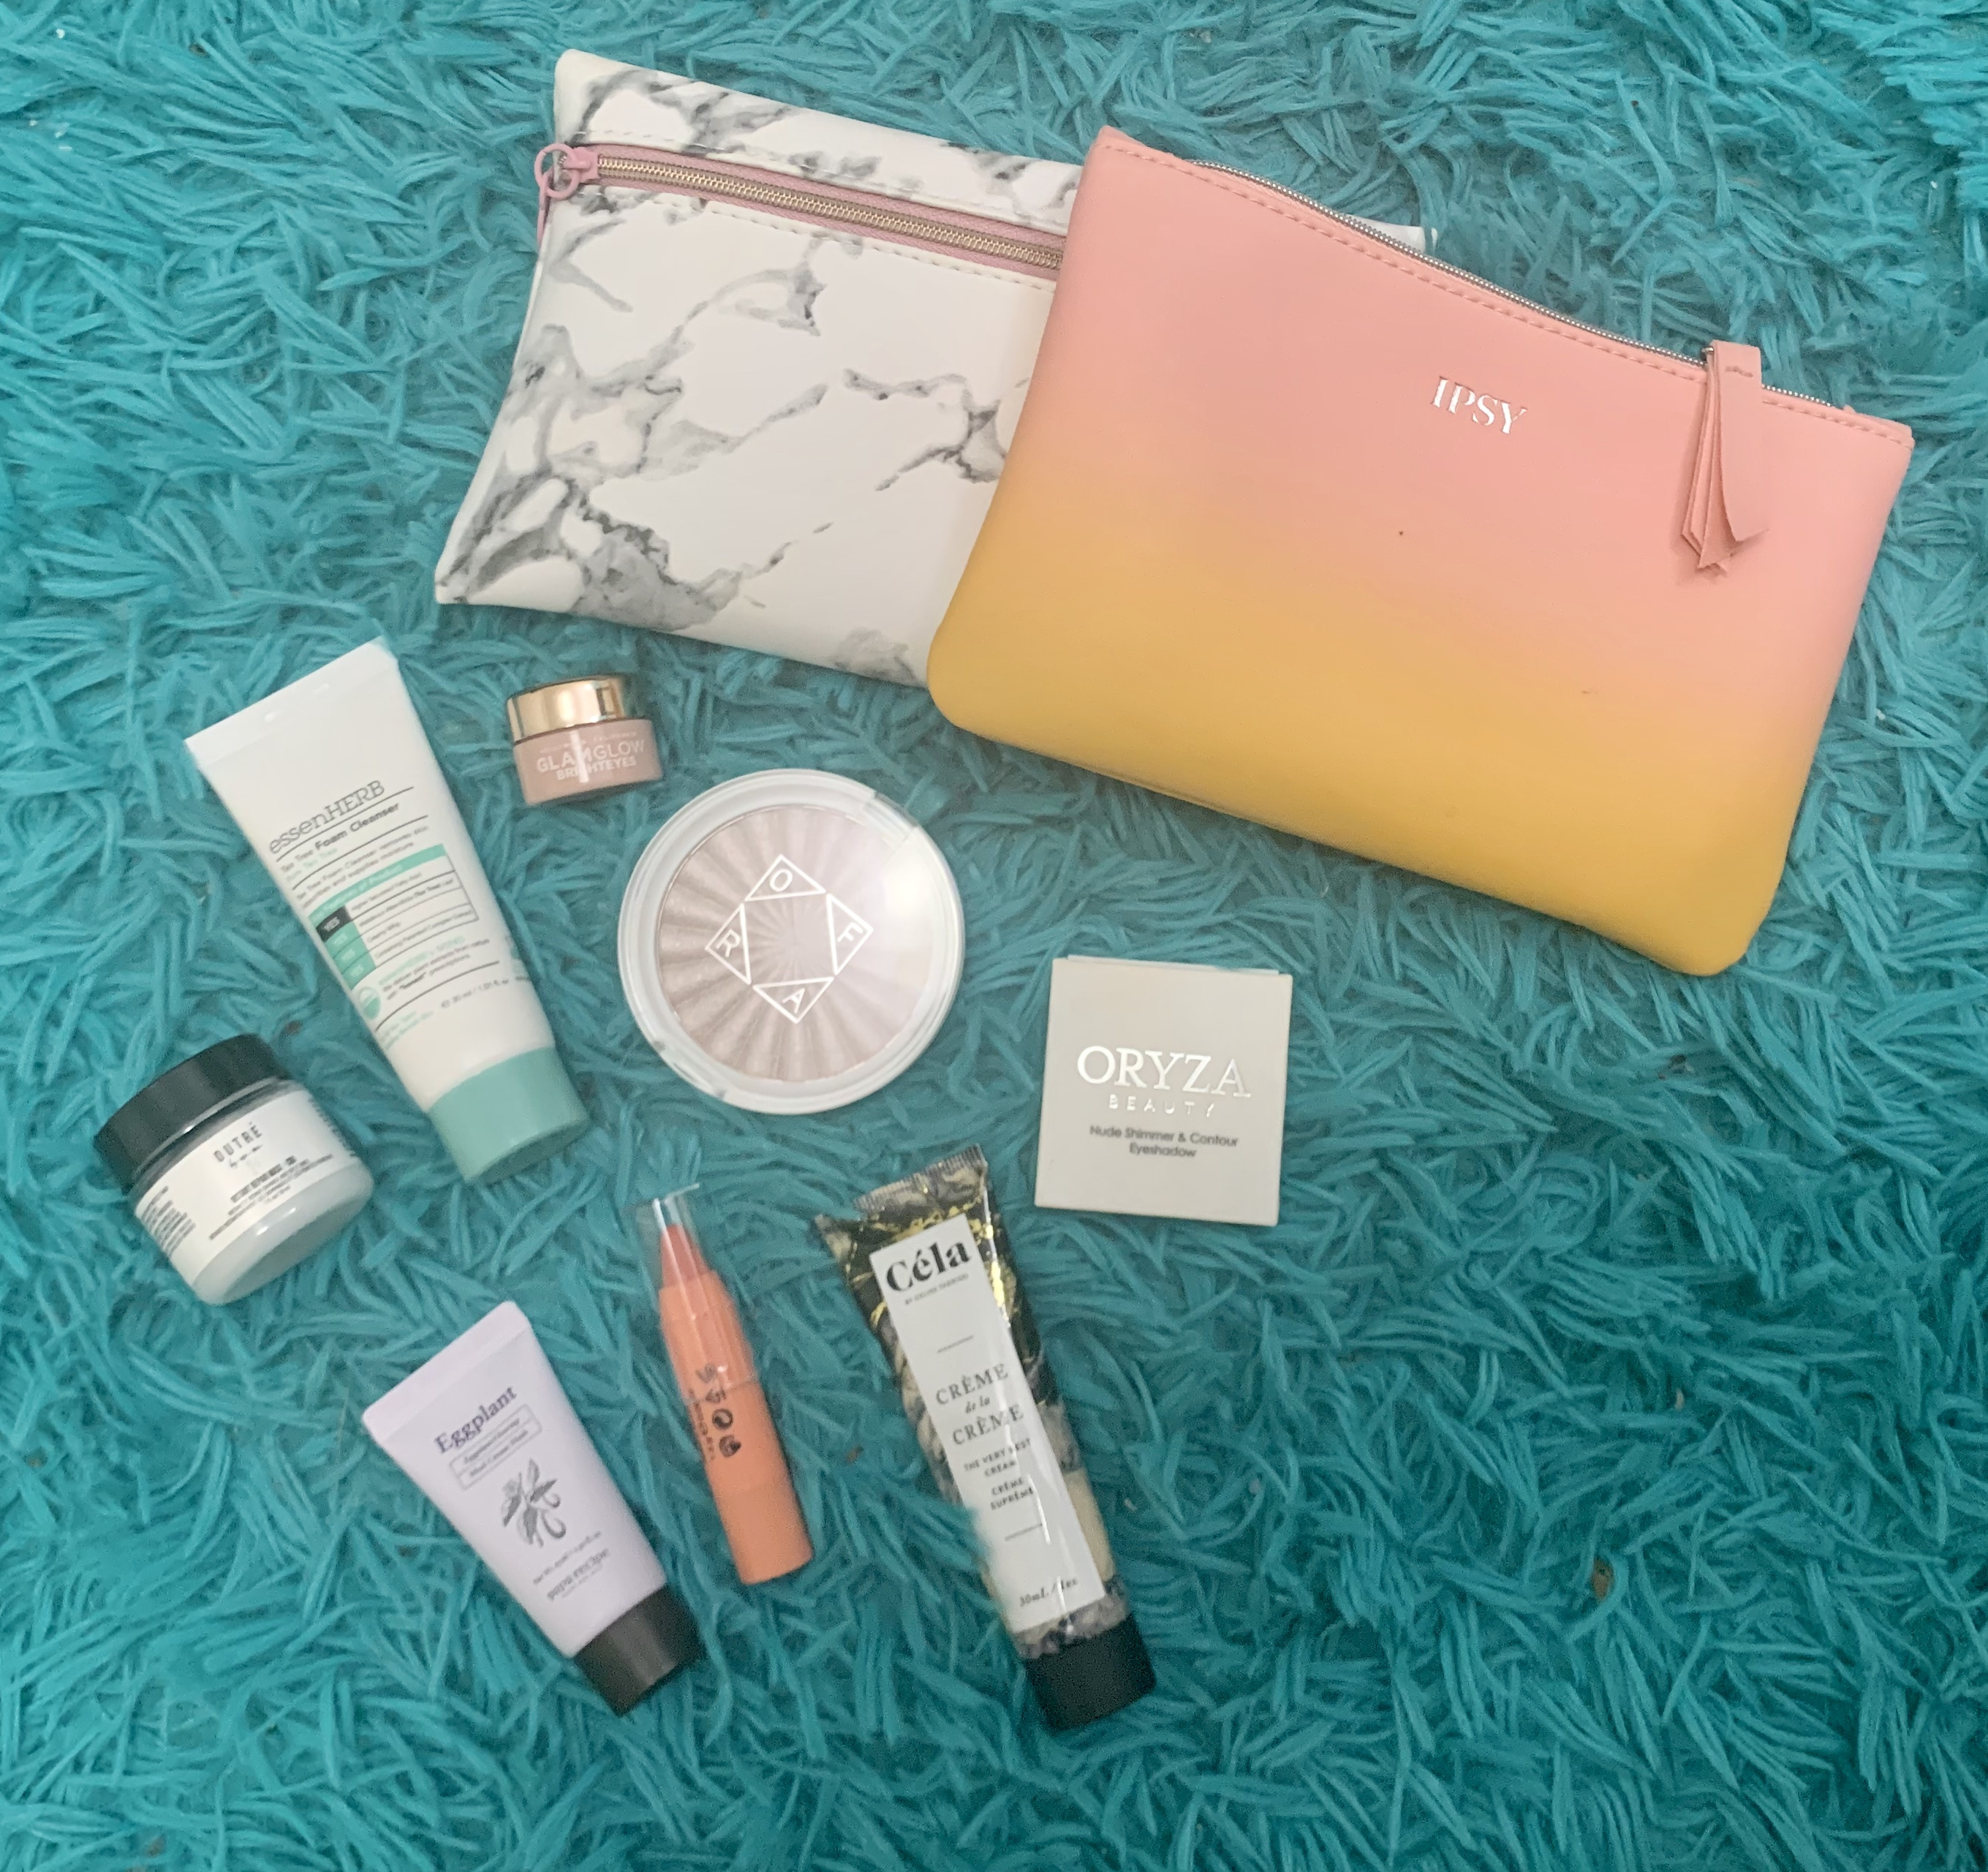 IPSY Monthly Subscription Review: Is it worth it?